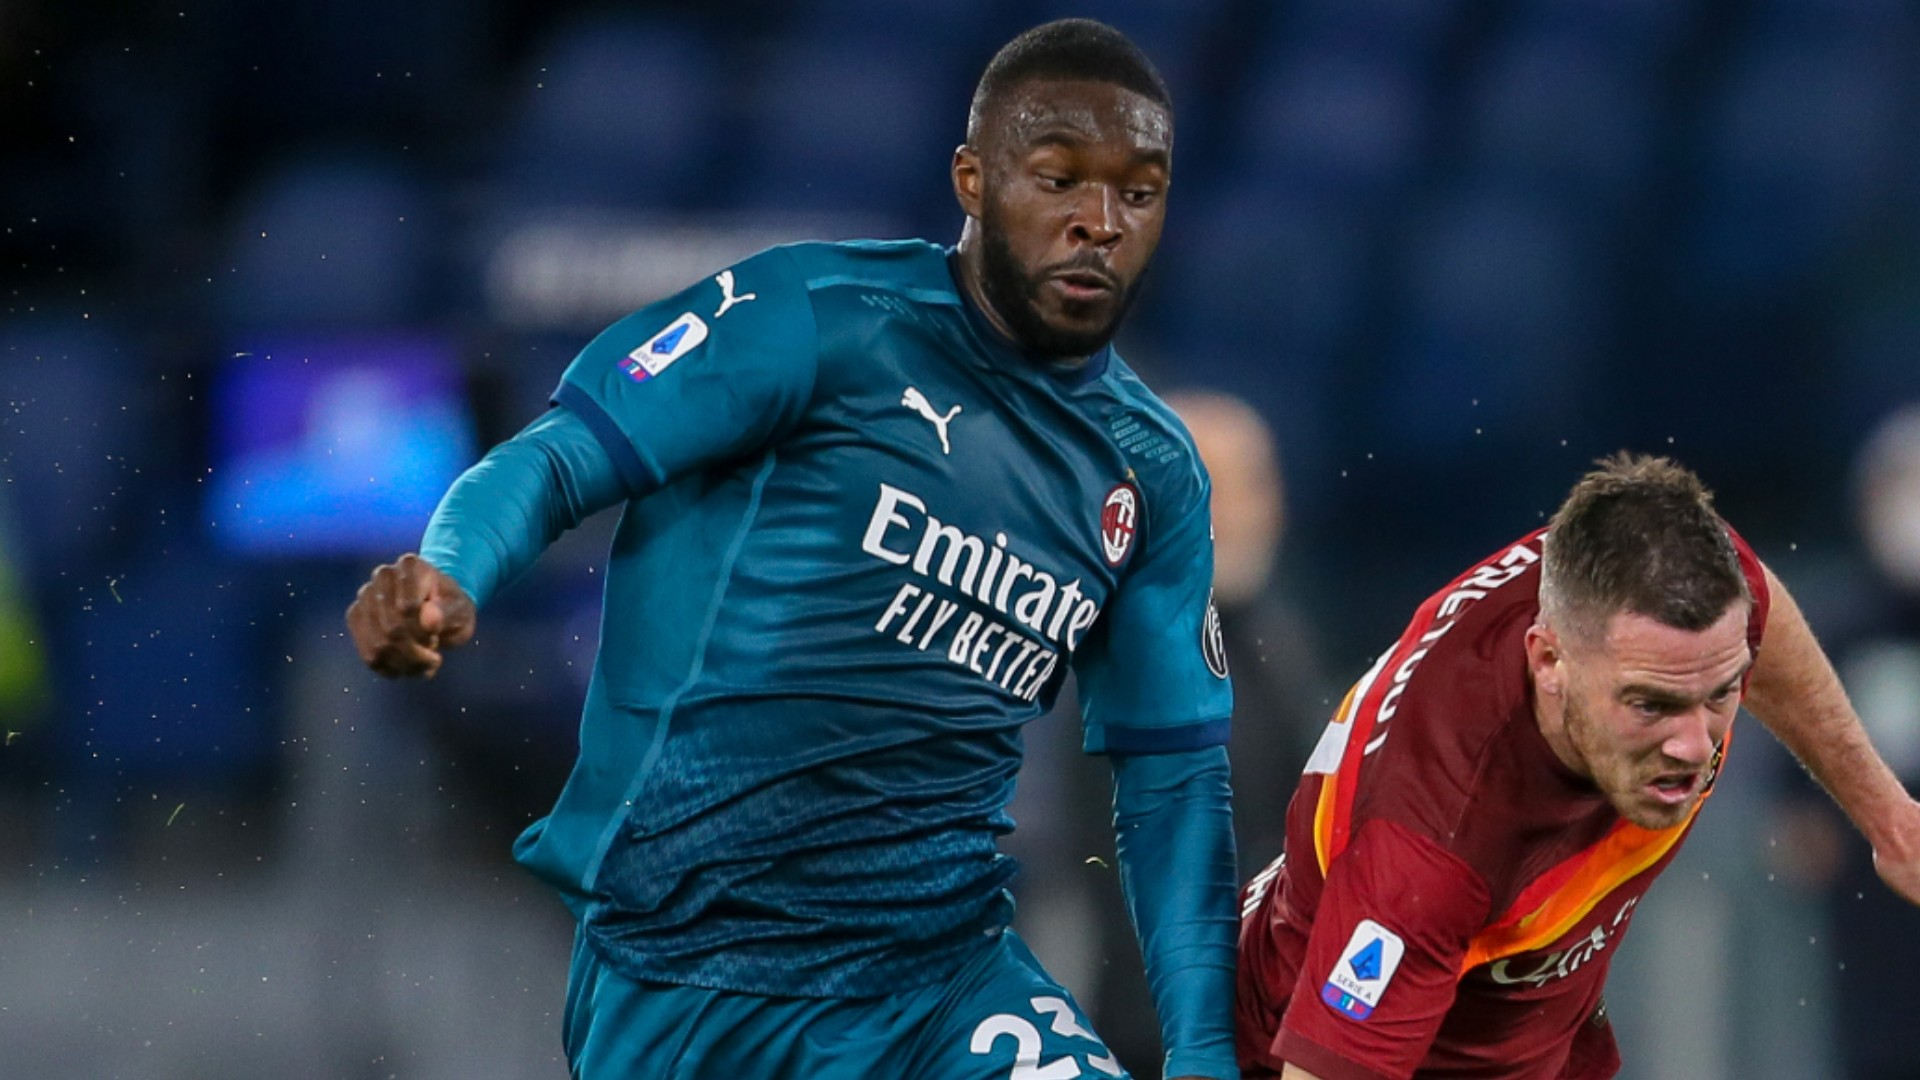 Fikayo Tomori has impressed since arriving from Chelsea and Milan pair Paolo Maldini and Stefano Pioli praised the defender.